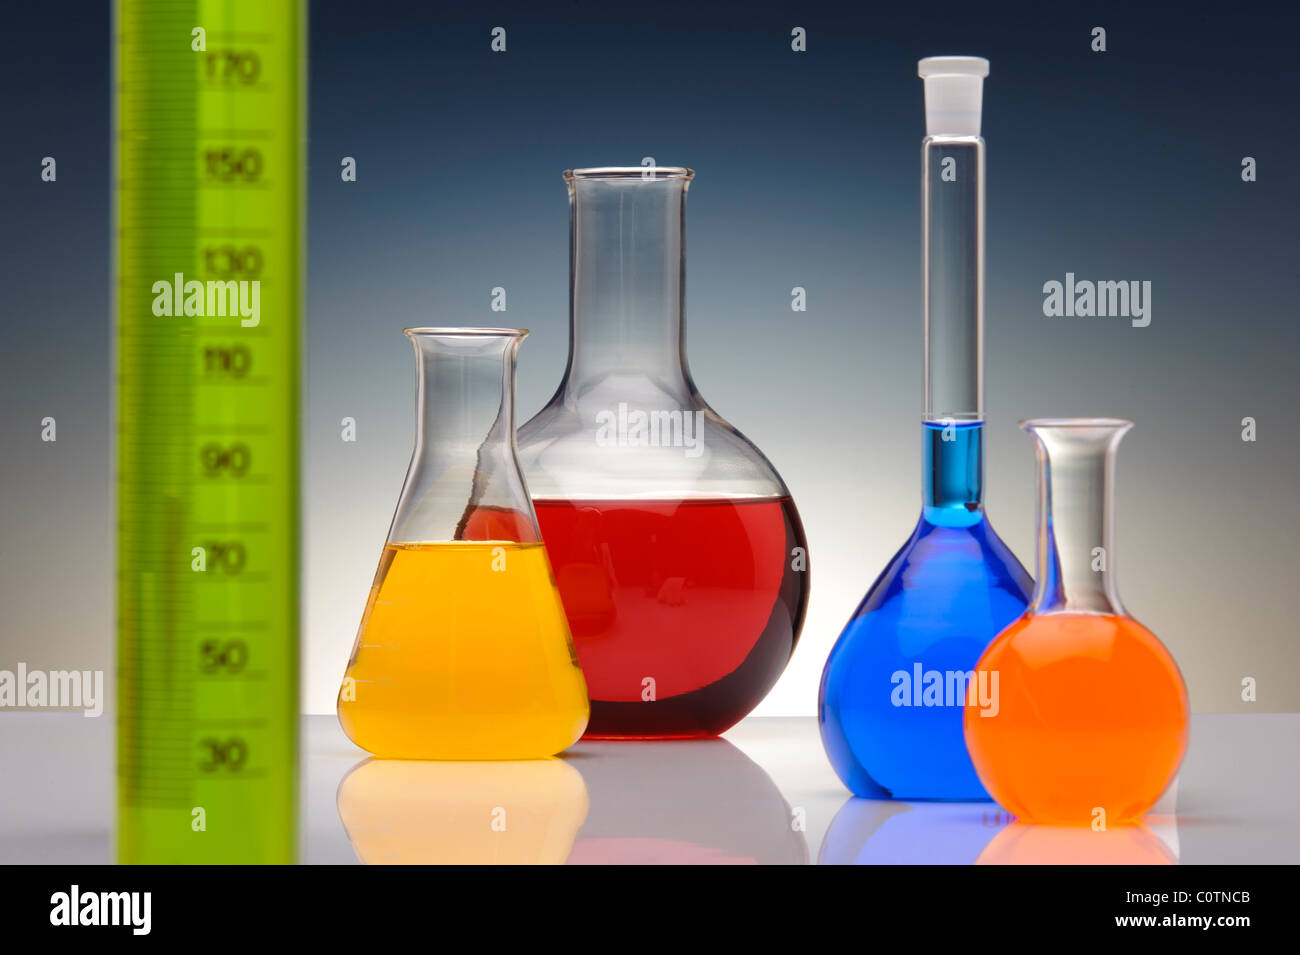 Verrerie de laboratoire chimique Photo Stock